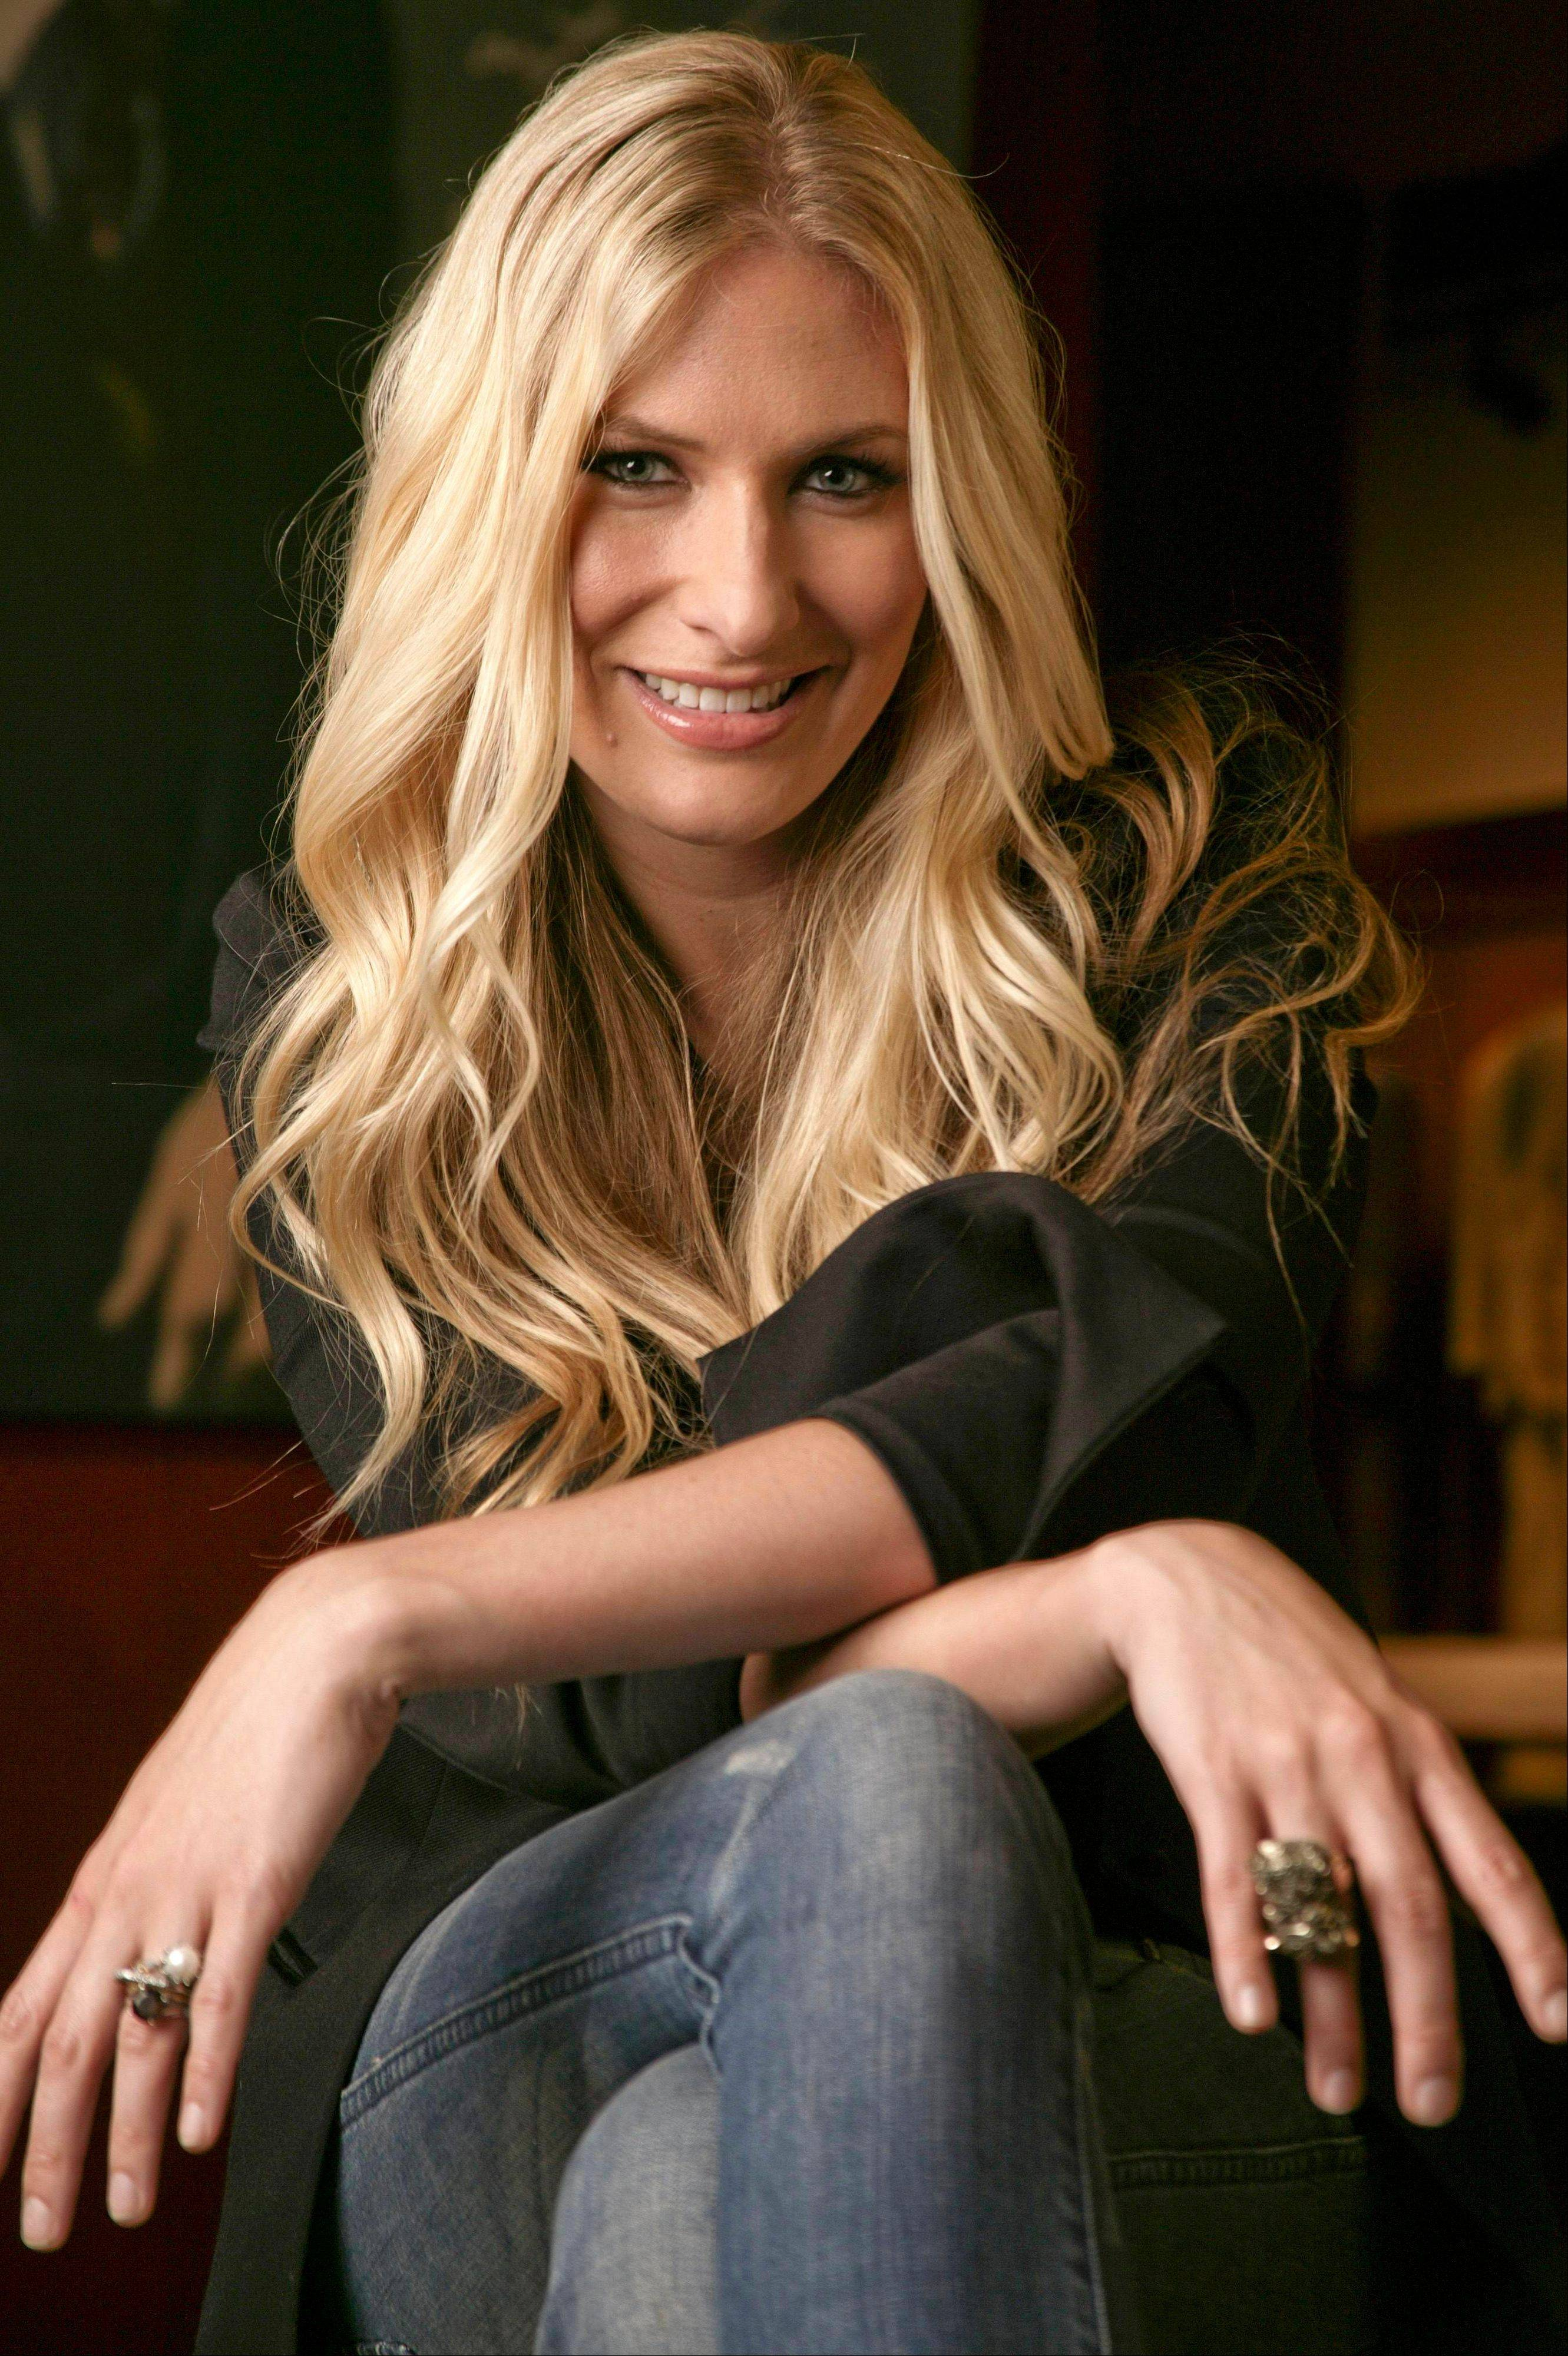 Holly Williams, daughter of Hank Williams Jr., acknowledges that with her musical pedigree she probably could have taken the fast track to success. Instead, she's been carving out her own career.